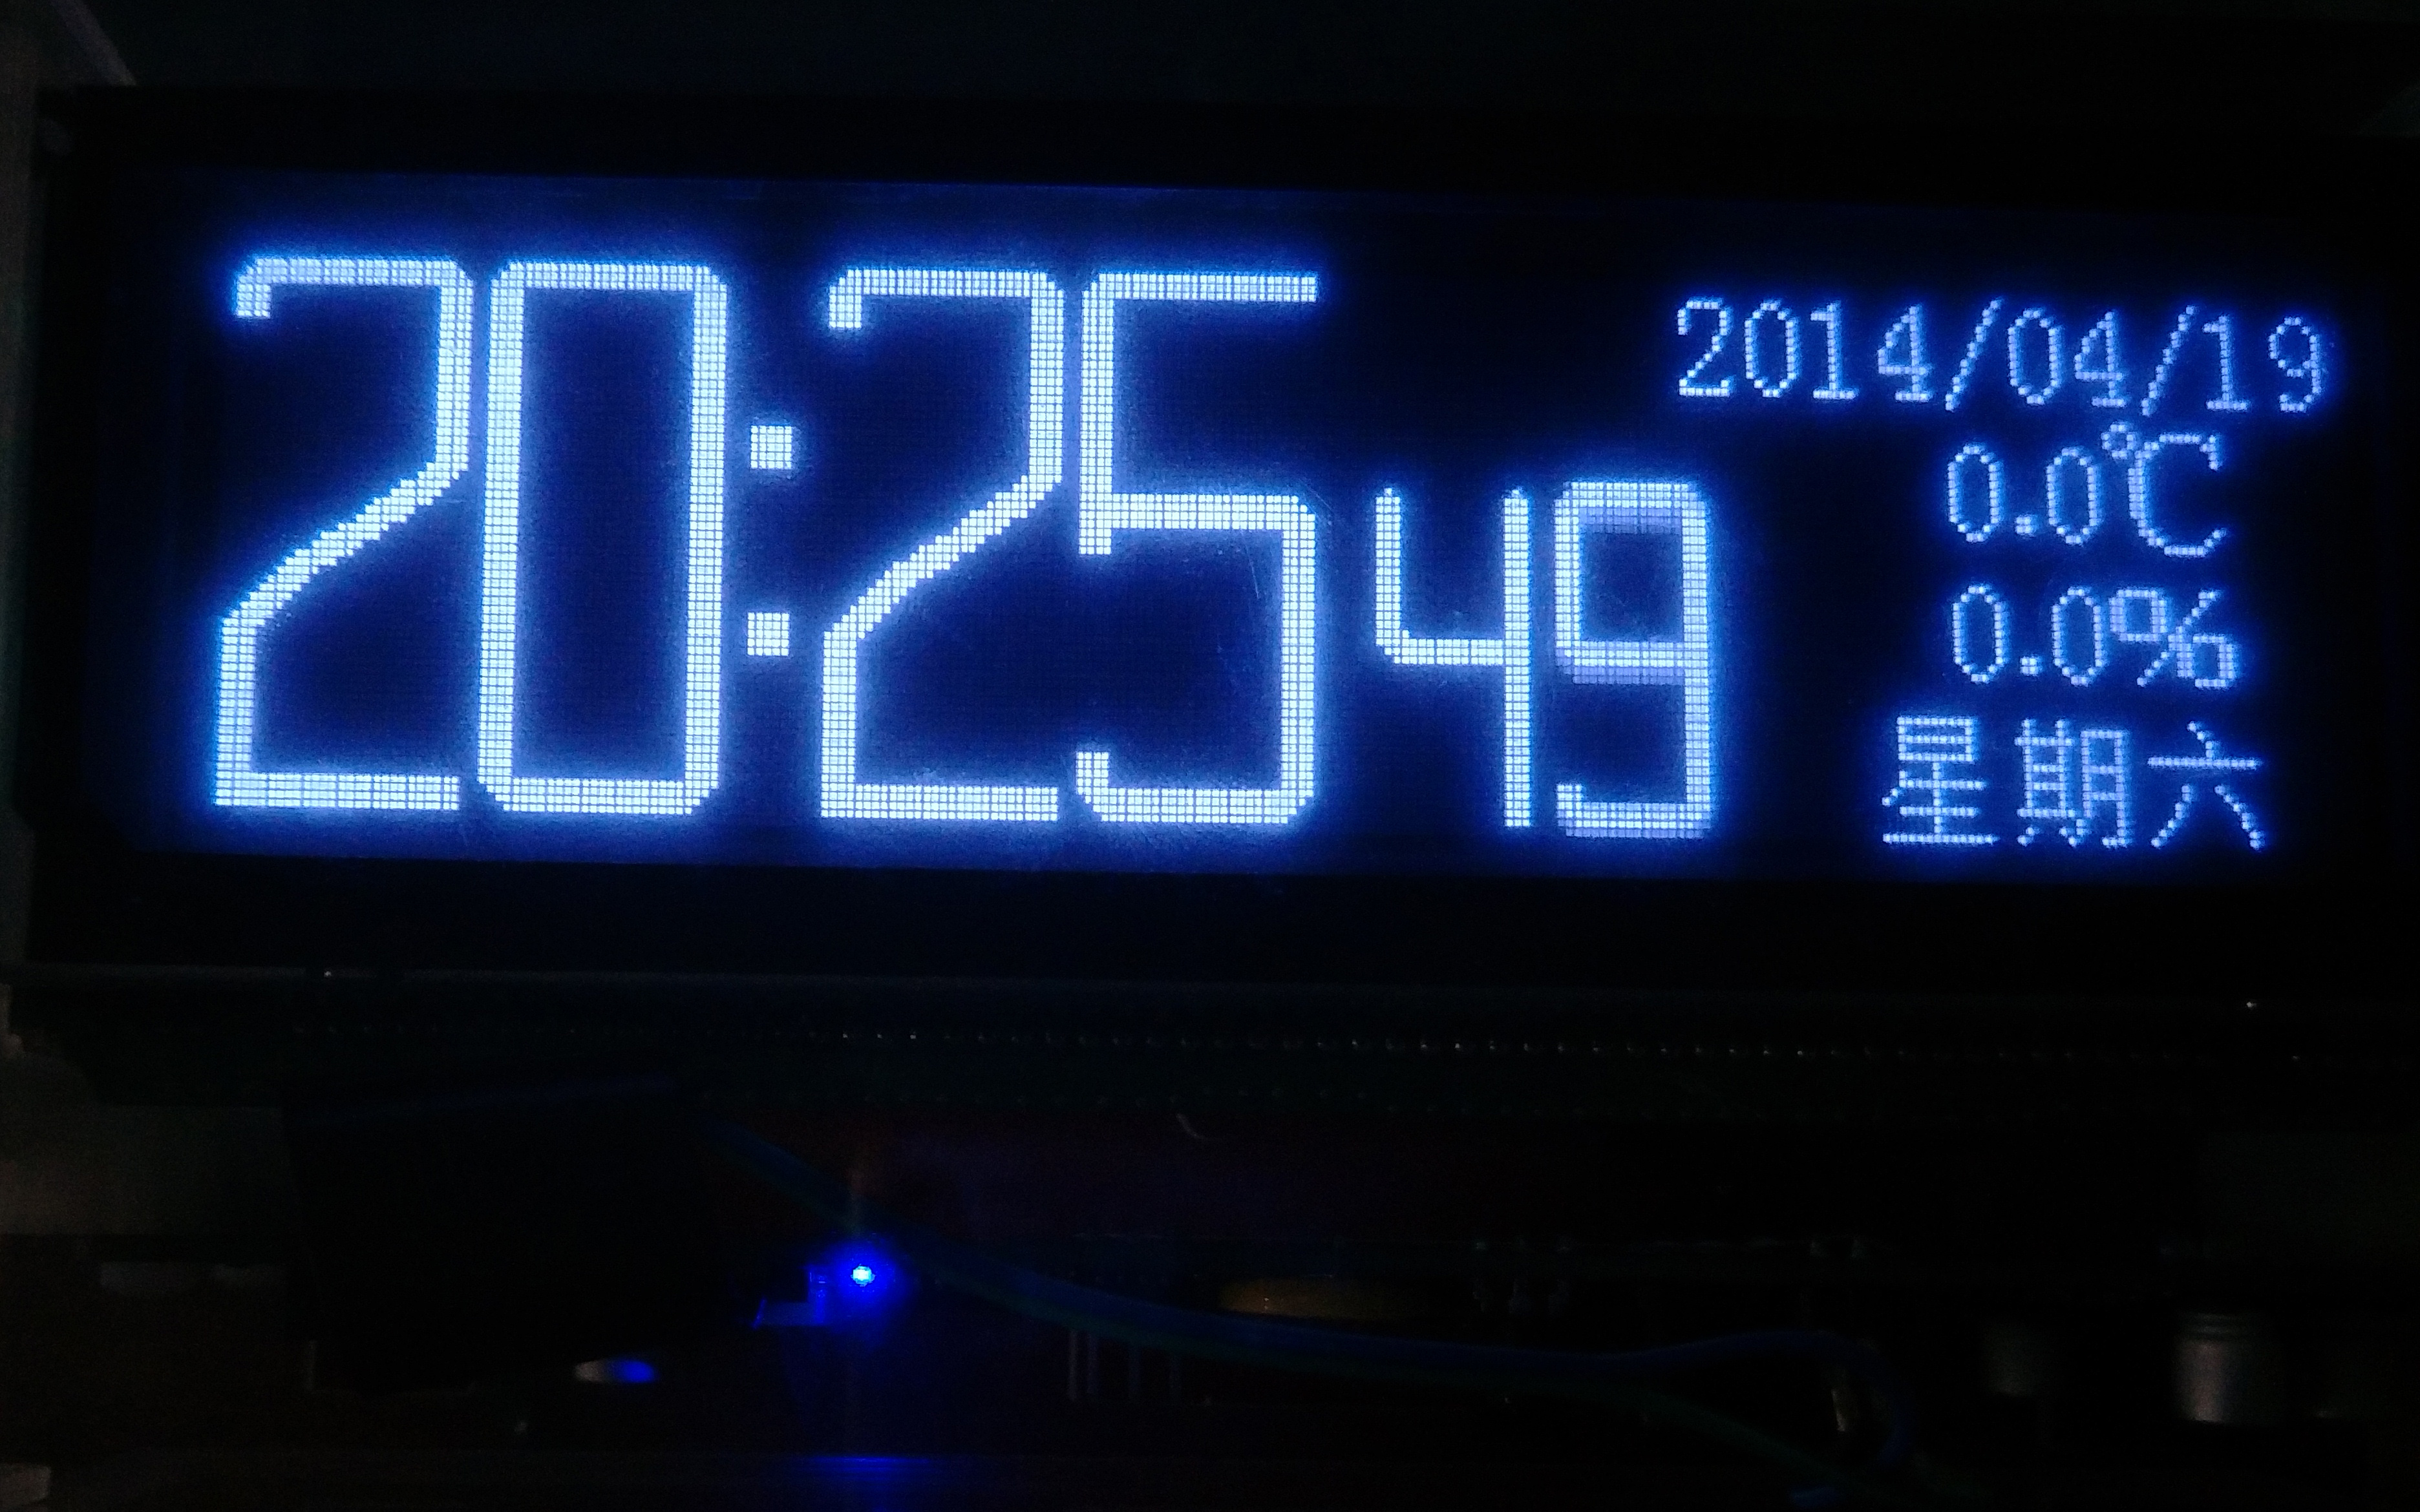 Vfd spectrum fft music spectrum display super led spectrum vfd clock